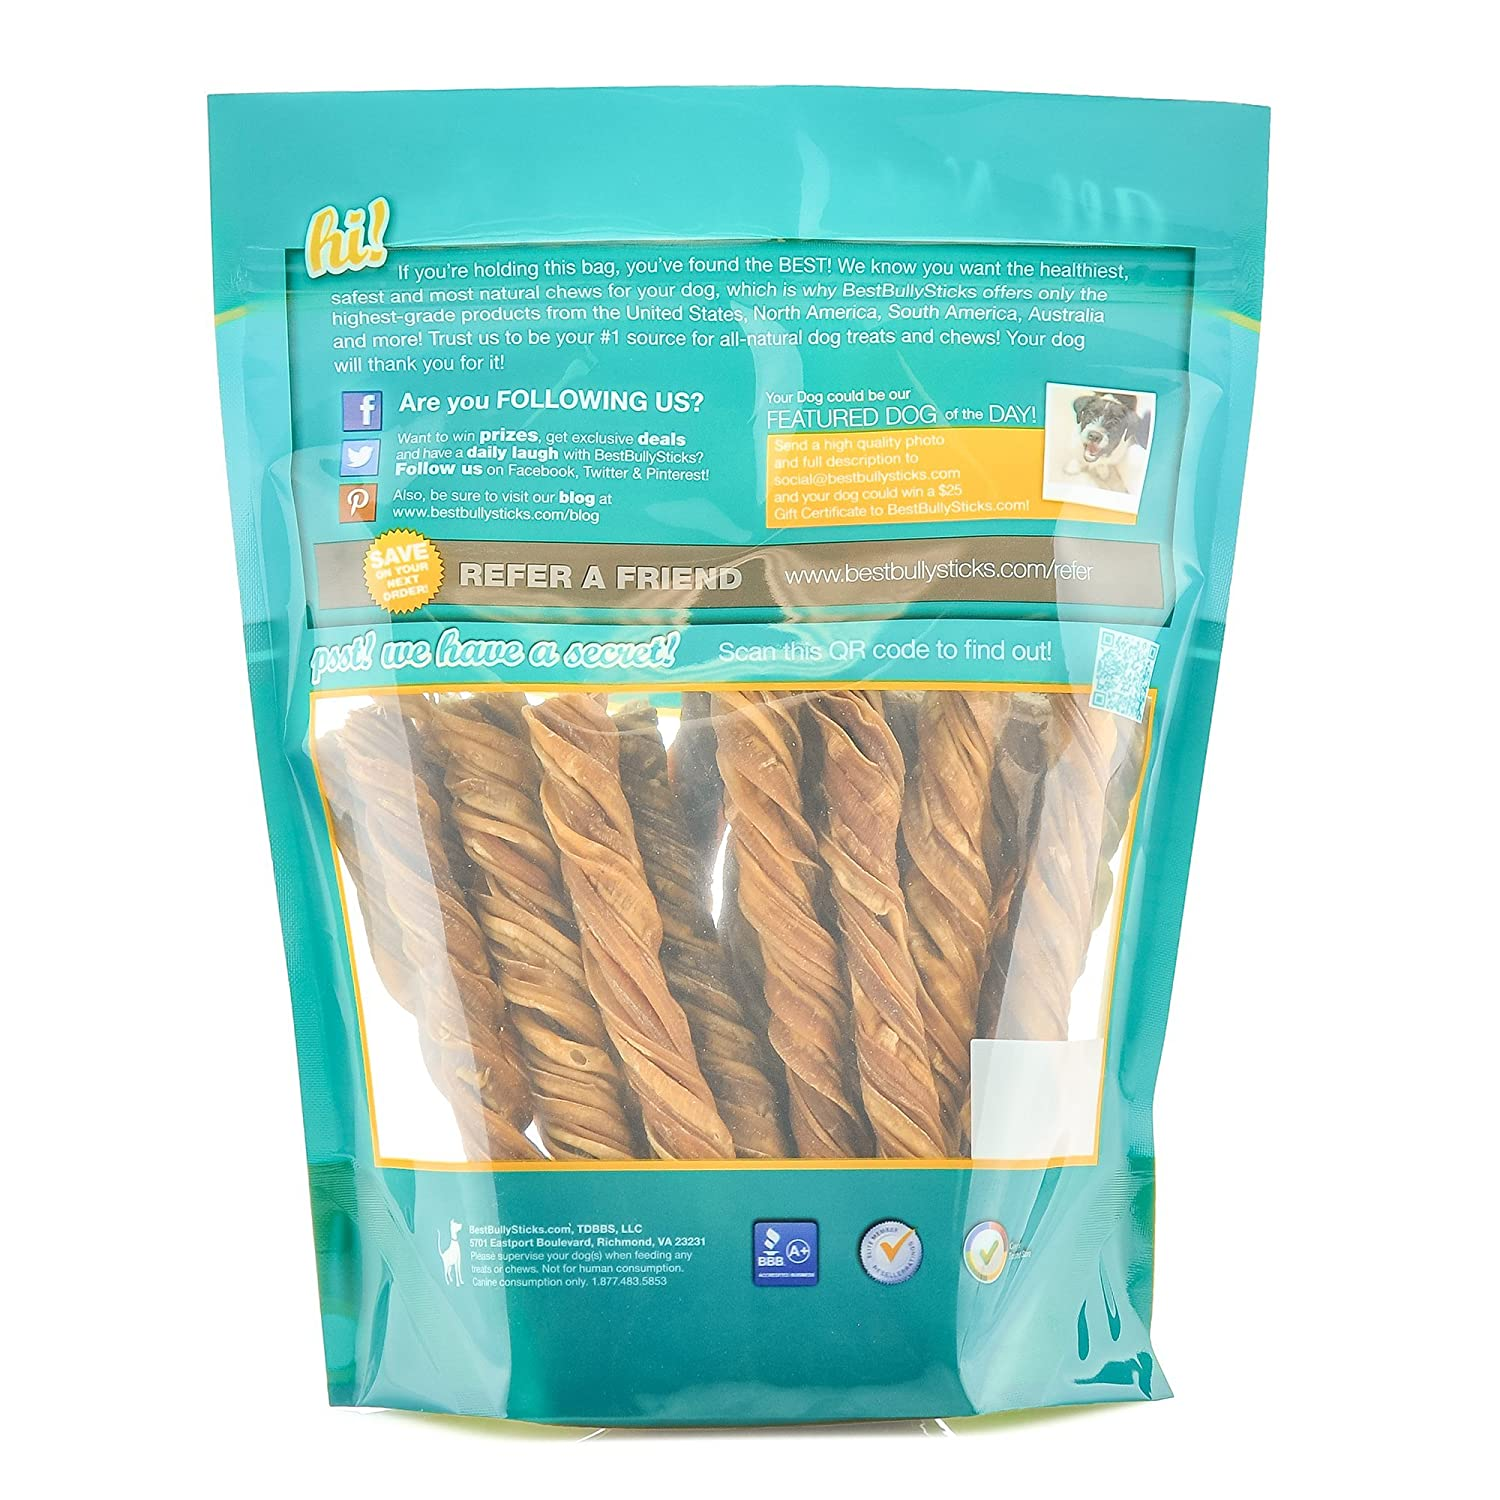 Amazon 100% Natural 5 inch Inch Tripe Twists by Best Bully